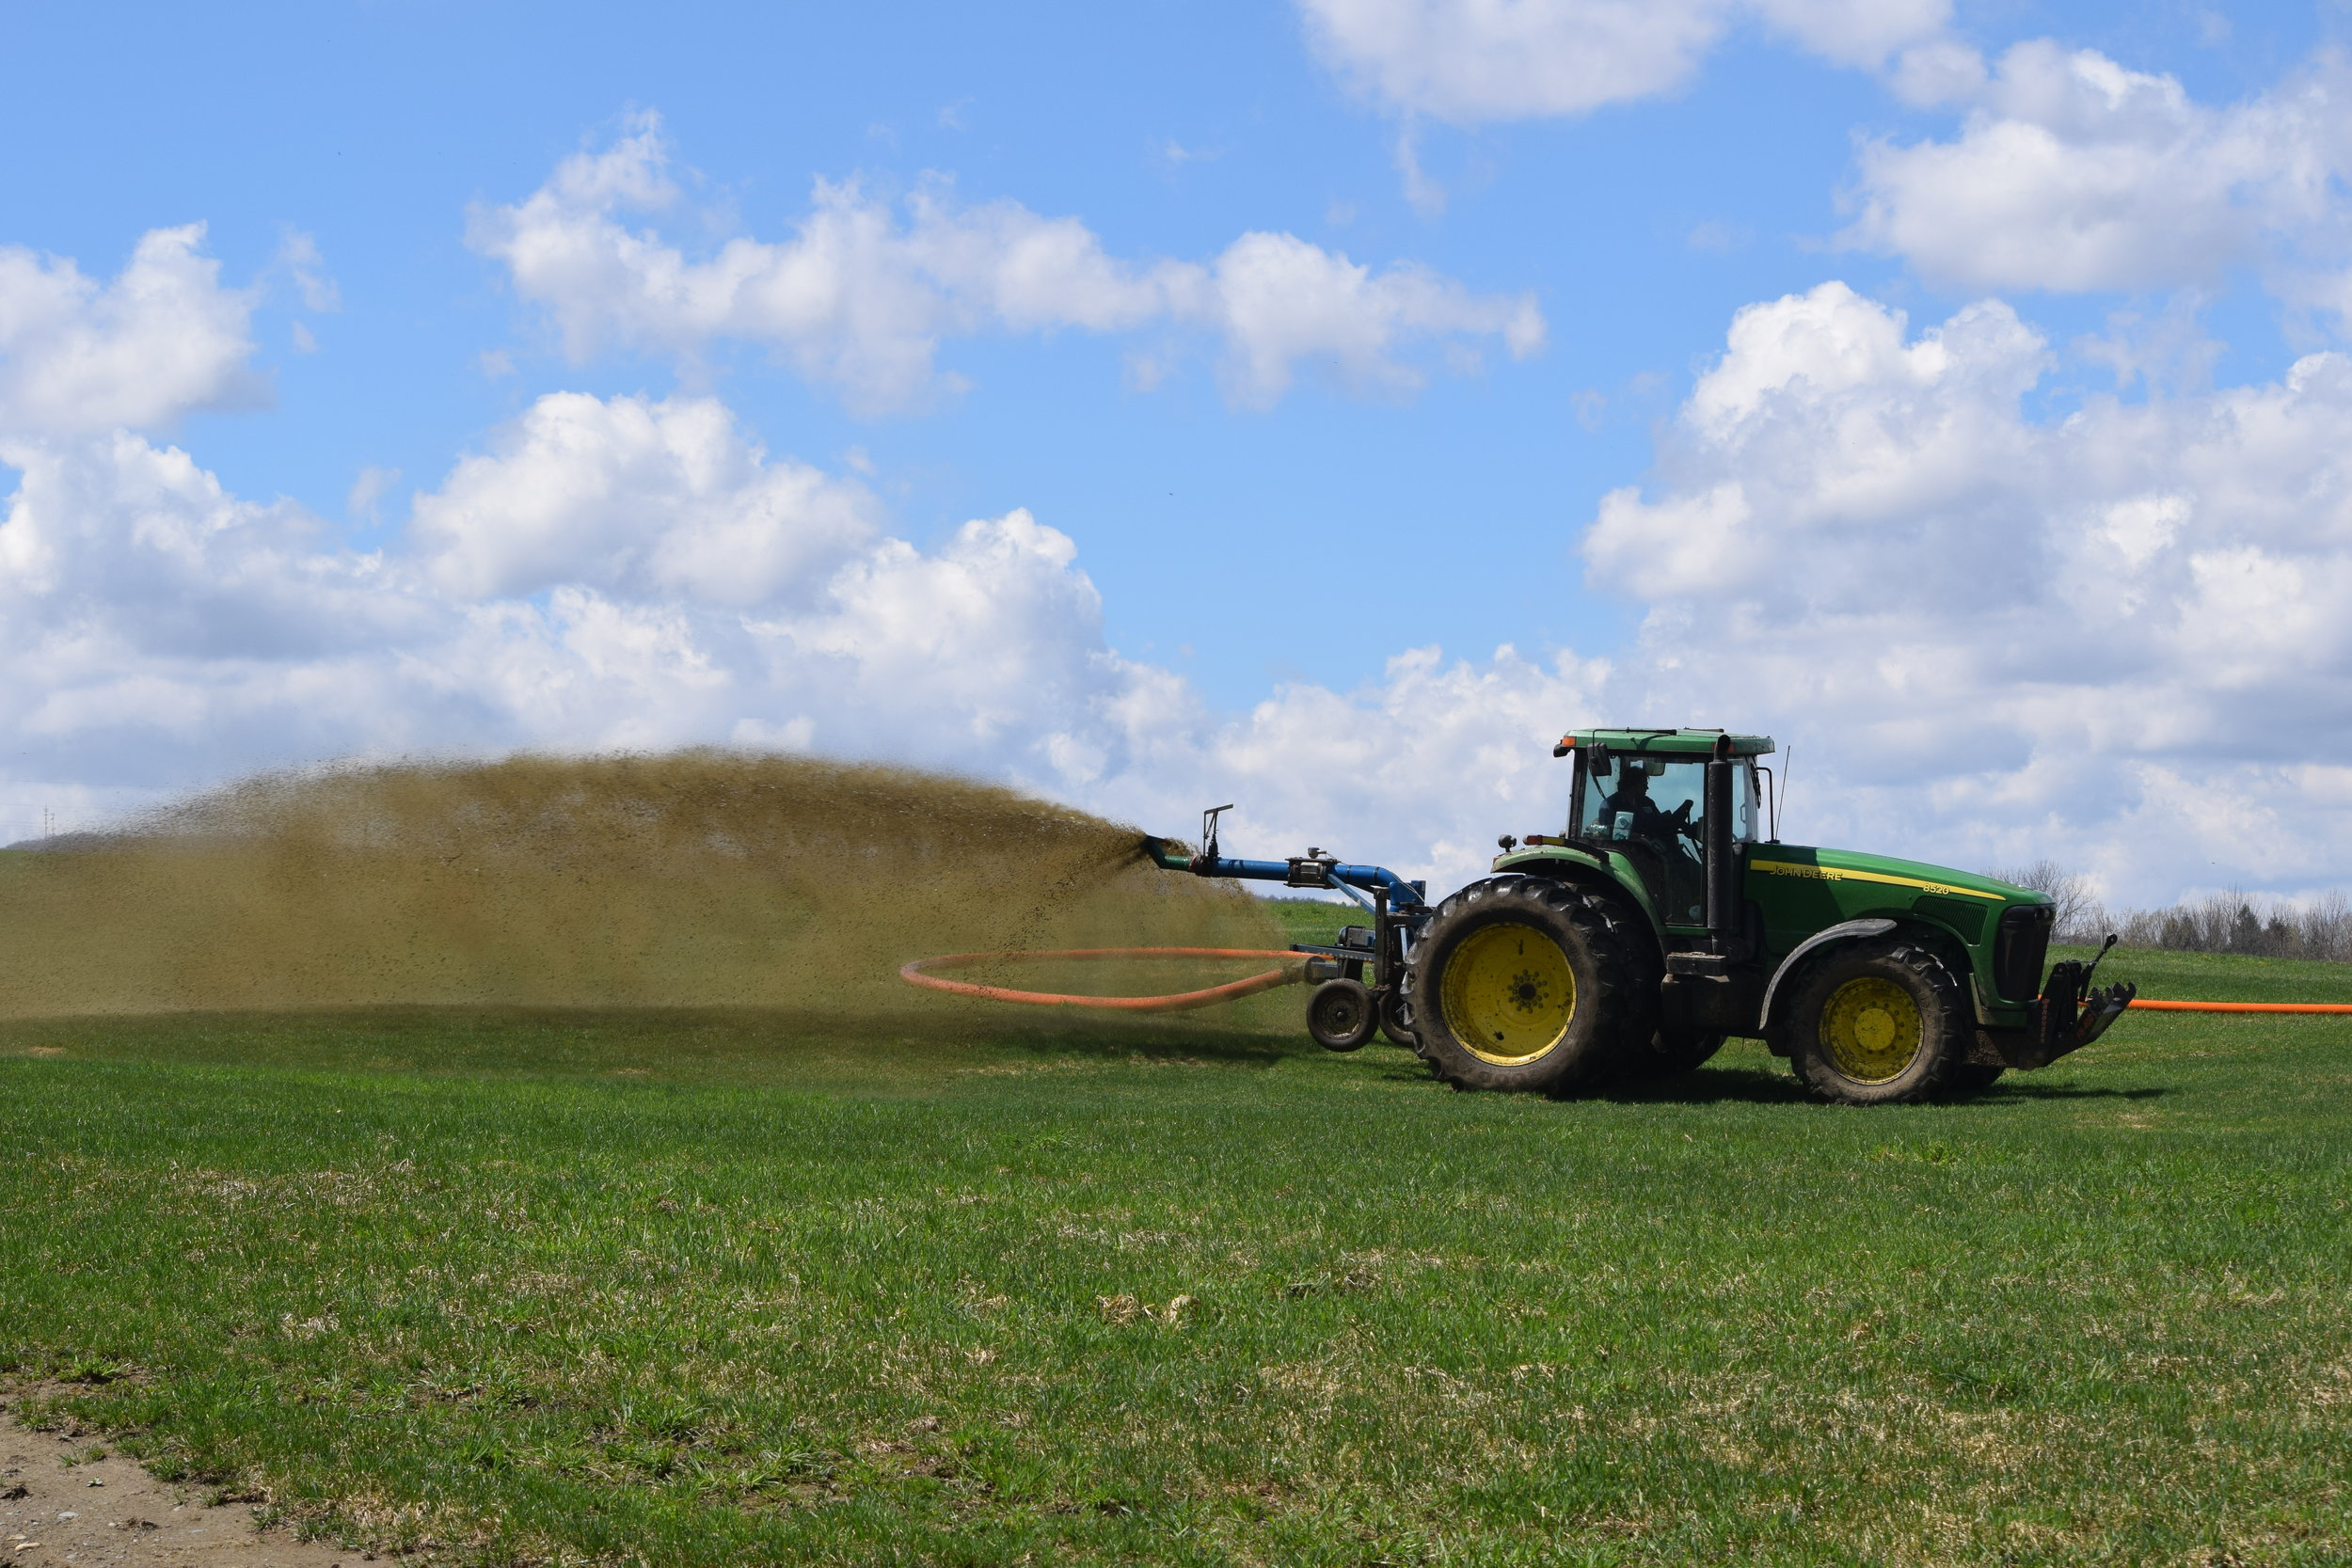 """Manure spread using the """"drag hose"""" method of piping manure through a hose straight from the manure pit to the tractor."""